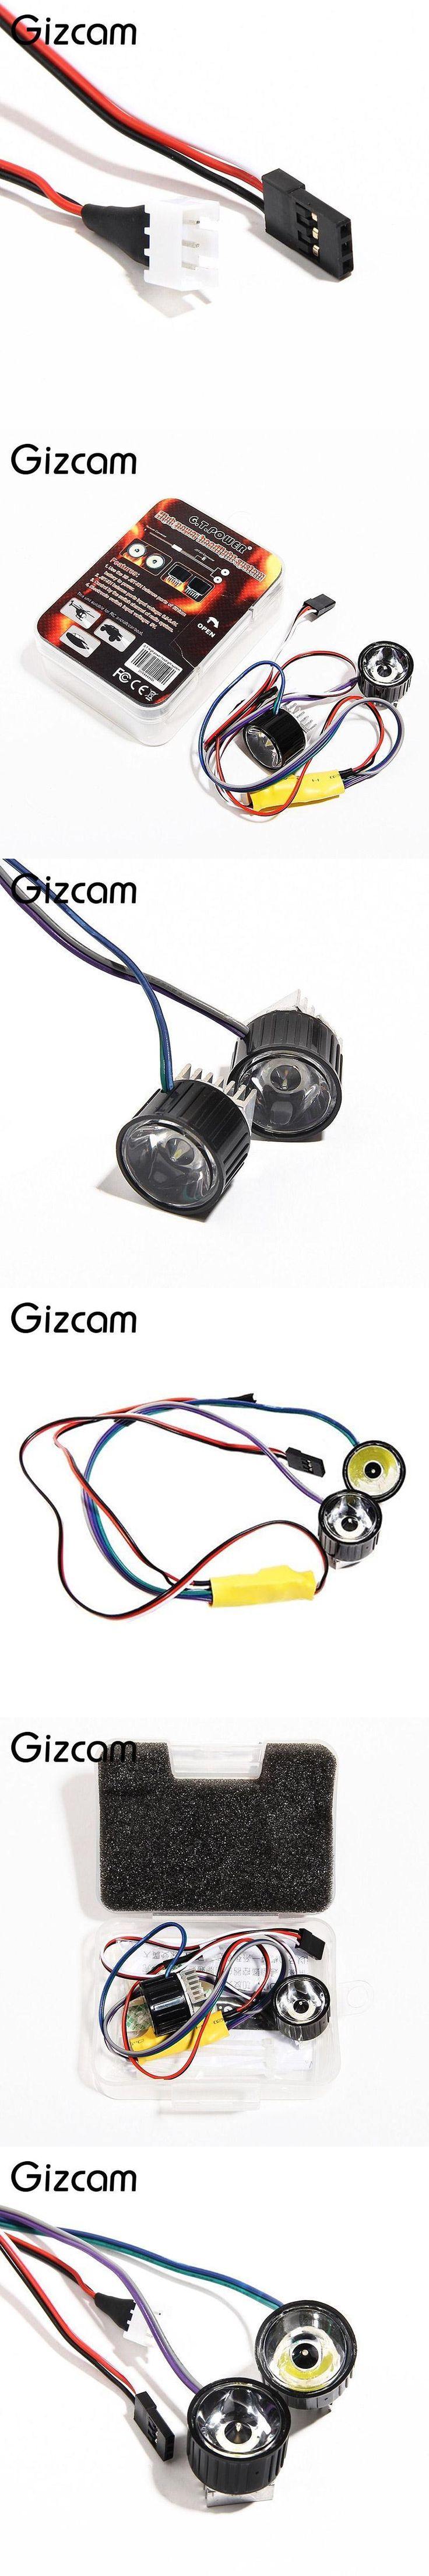 Gizcam GT POWER High Power Headlight Lamp System for Rc Model Car Boat Helicopter Copter Plane GT019 Headlamp Drone Accessories